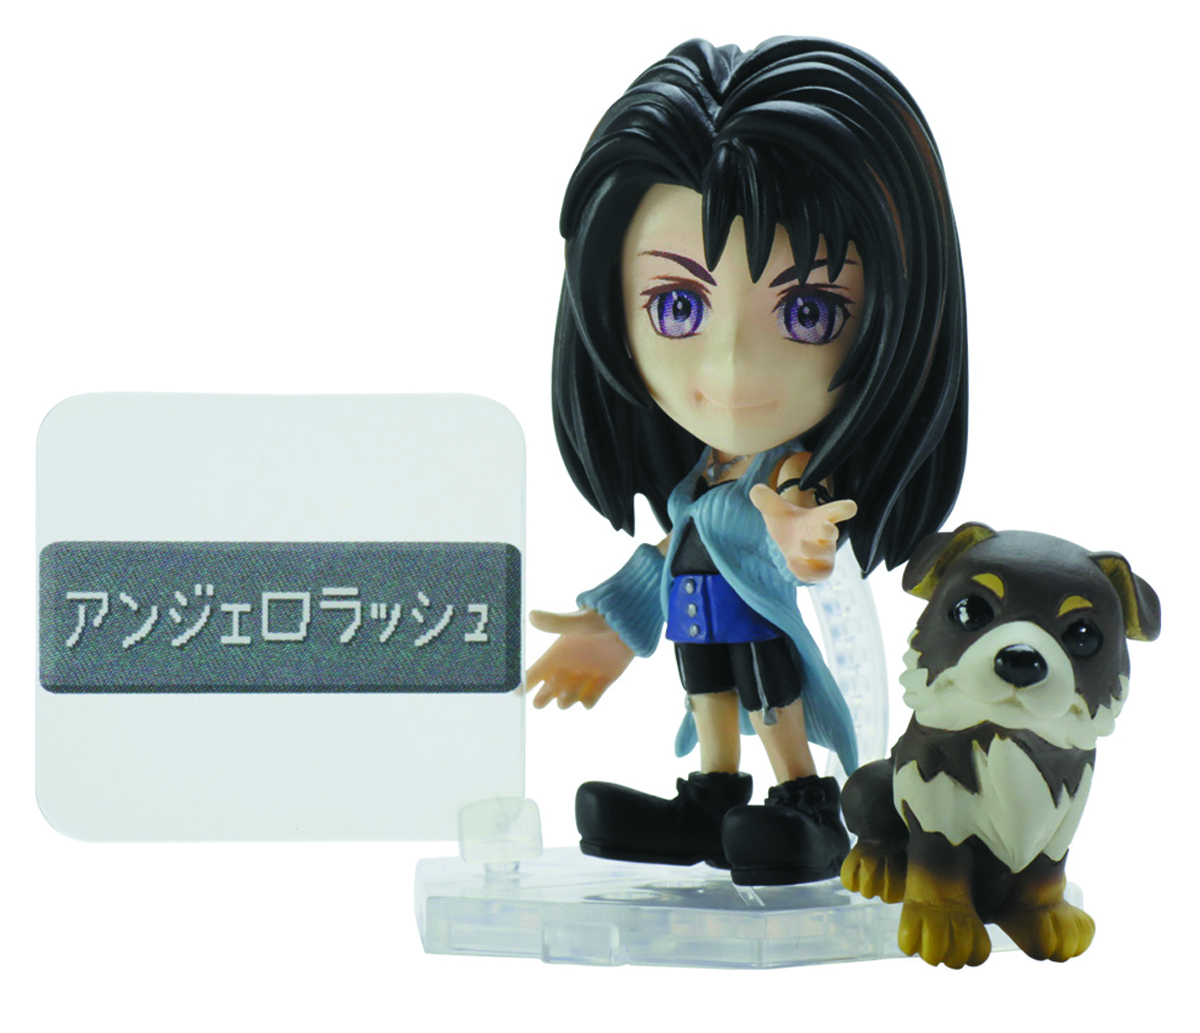 FF TRADING ARTS KAI MINI RINOA FIG